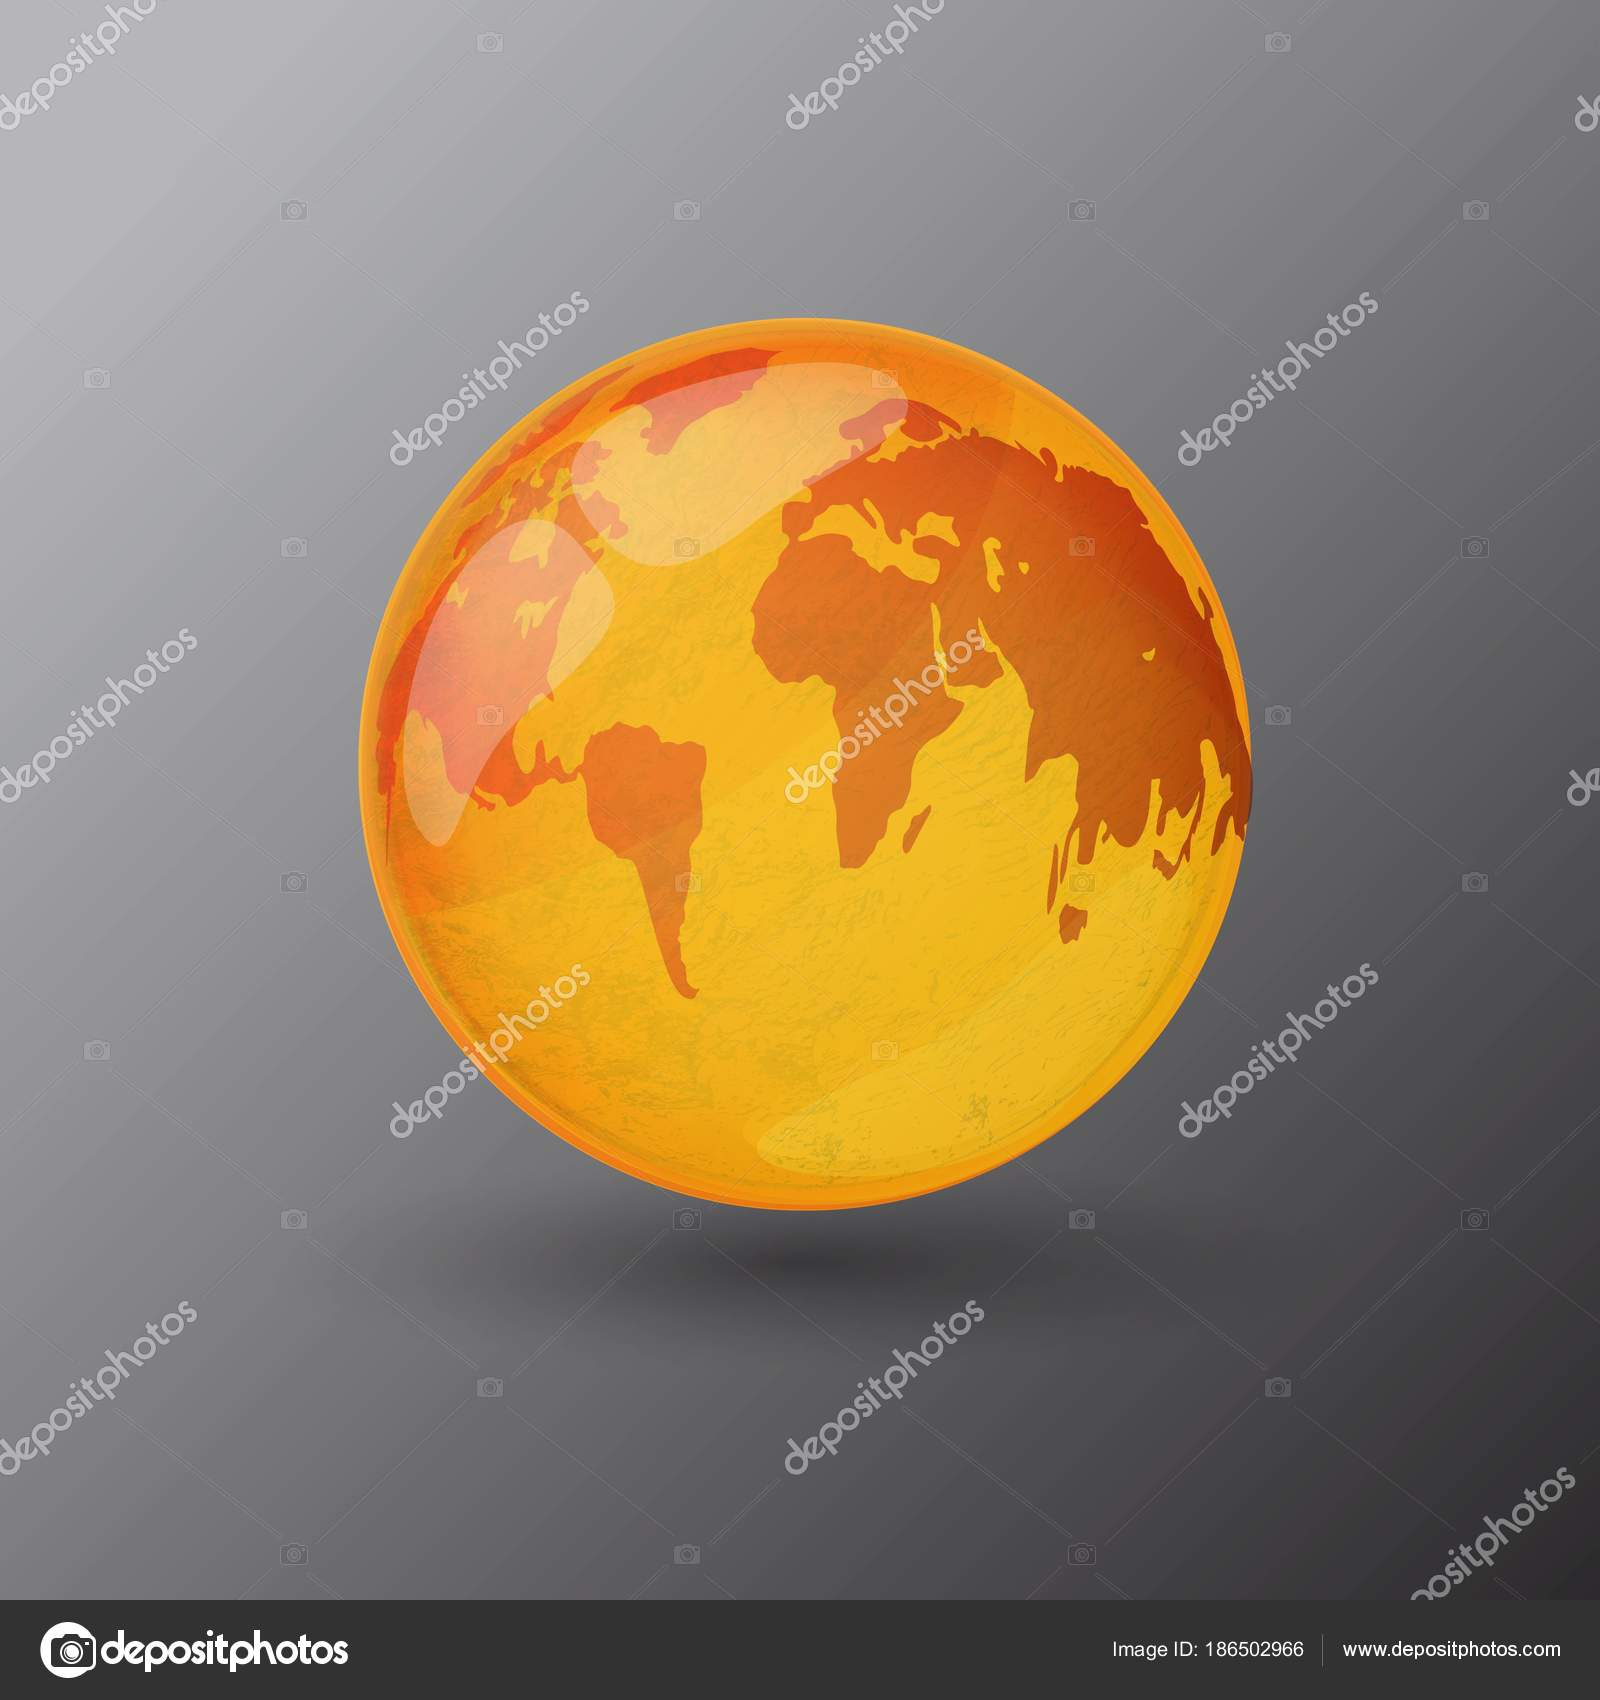 Yellow world map icon grey bnackground stock vector slasny1988 yellow world map icon grey bnackground stock vector gumiabroncs Choice Image